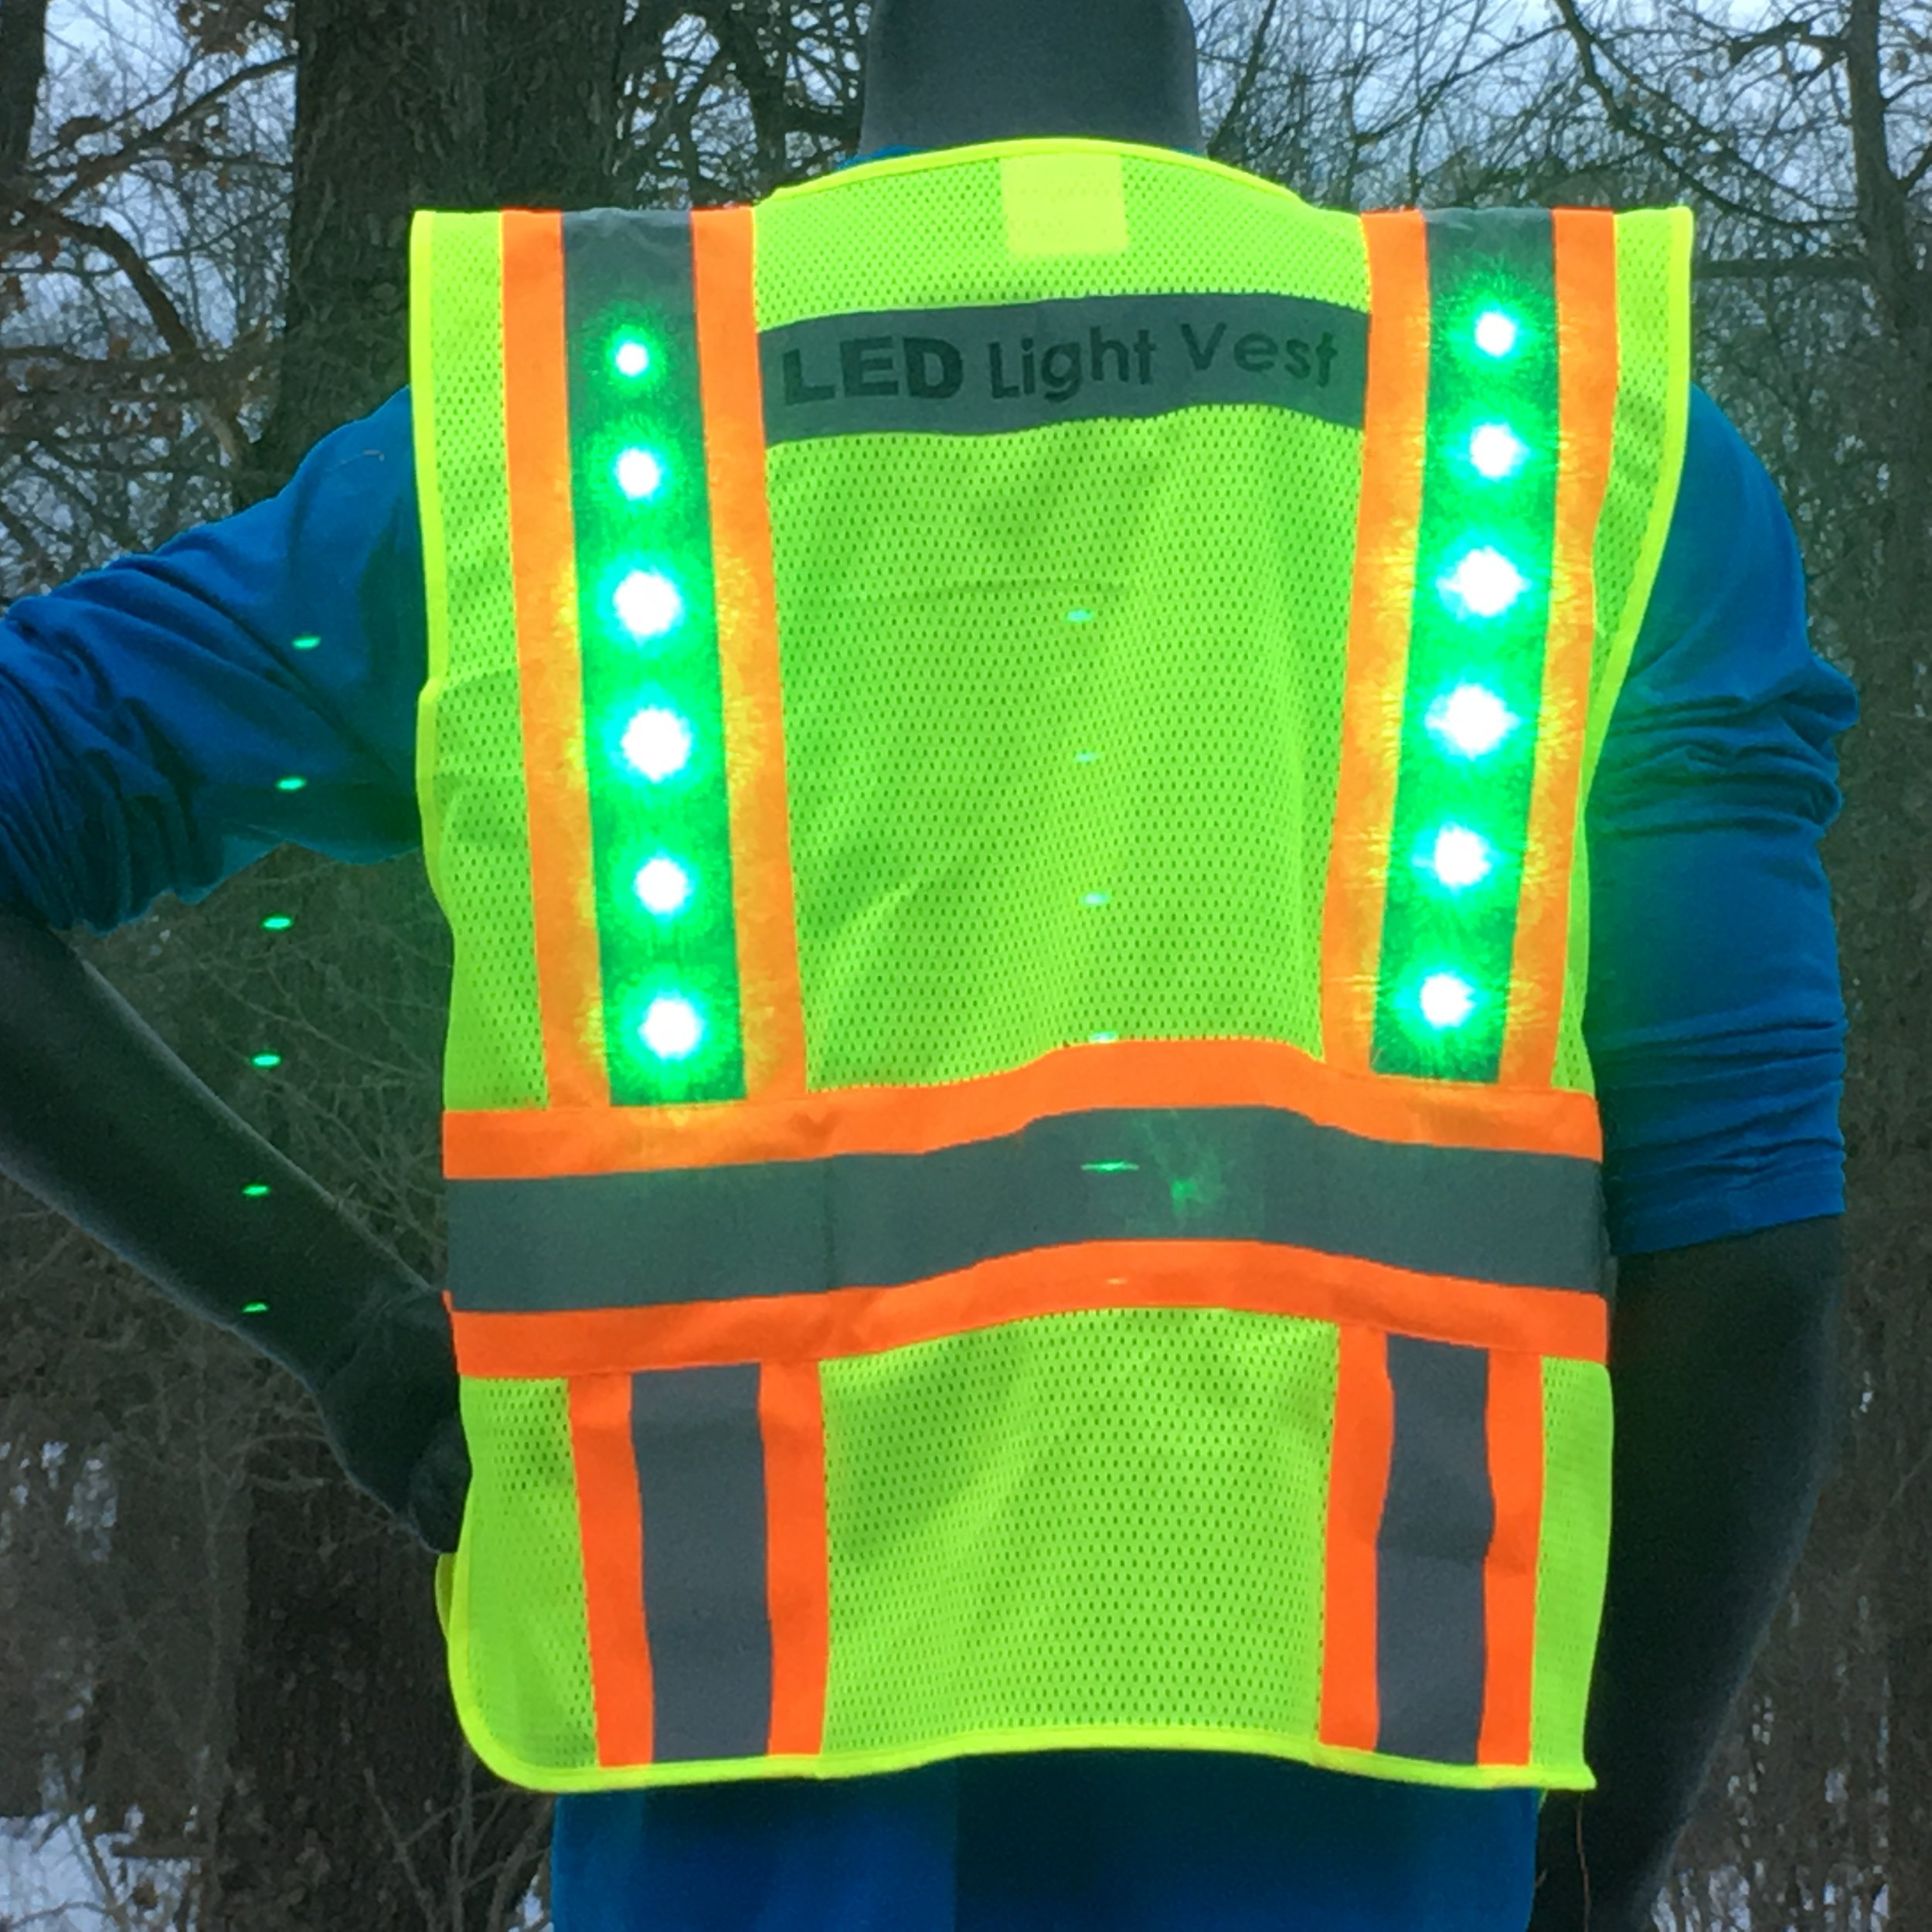 ANSI-Class2-LED-Light-Vest-Safety-Vest-back-GREEN.JPG